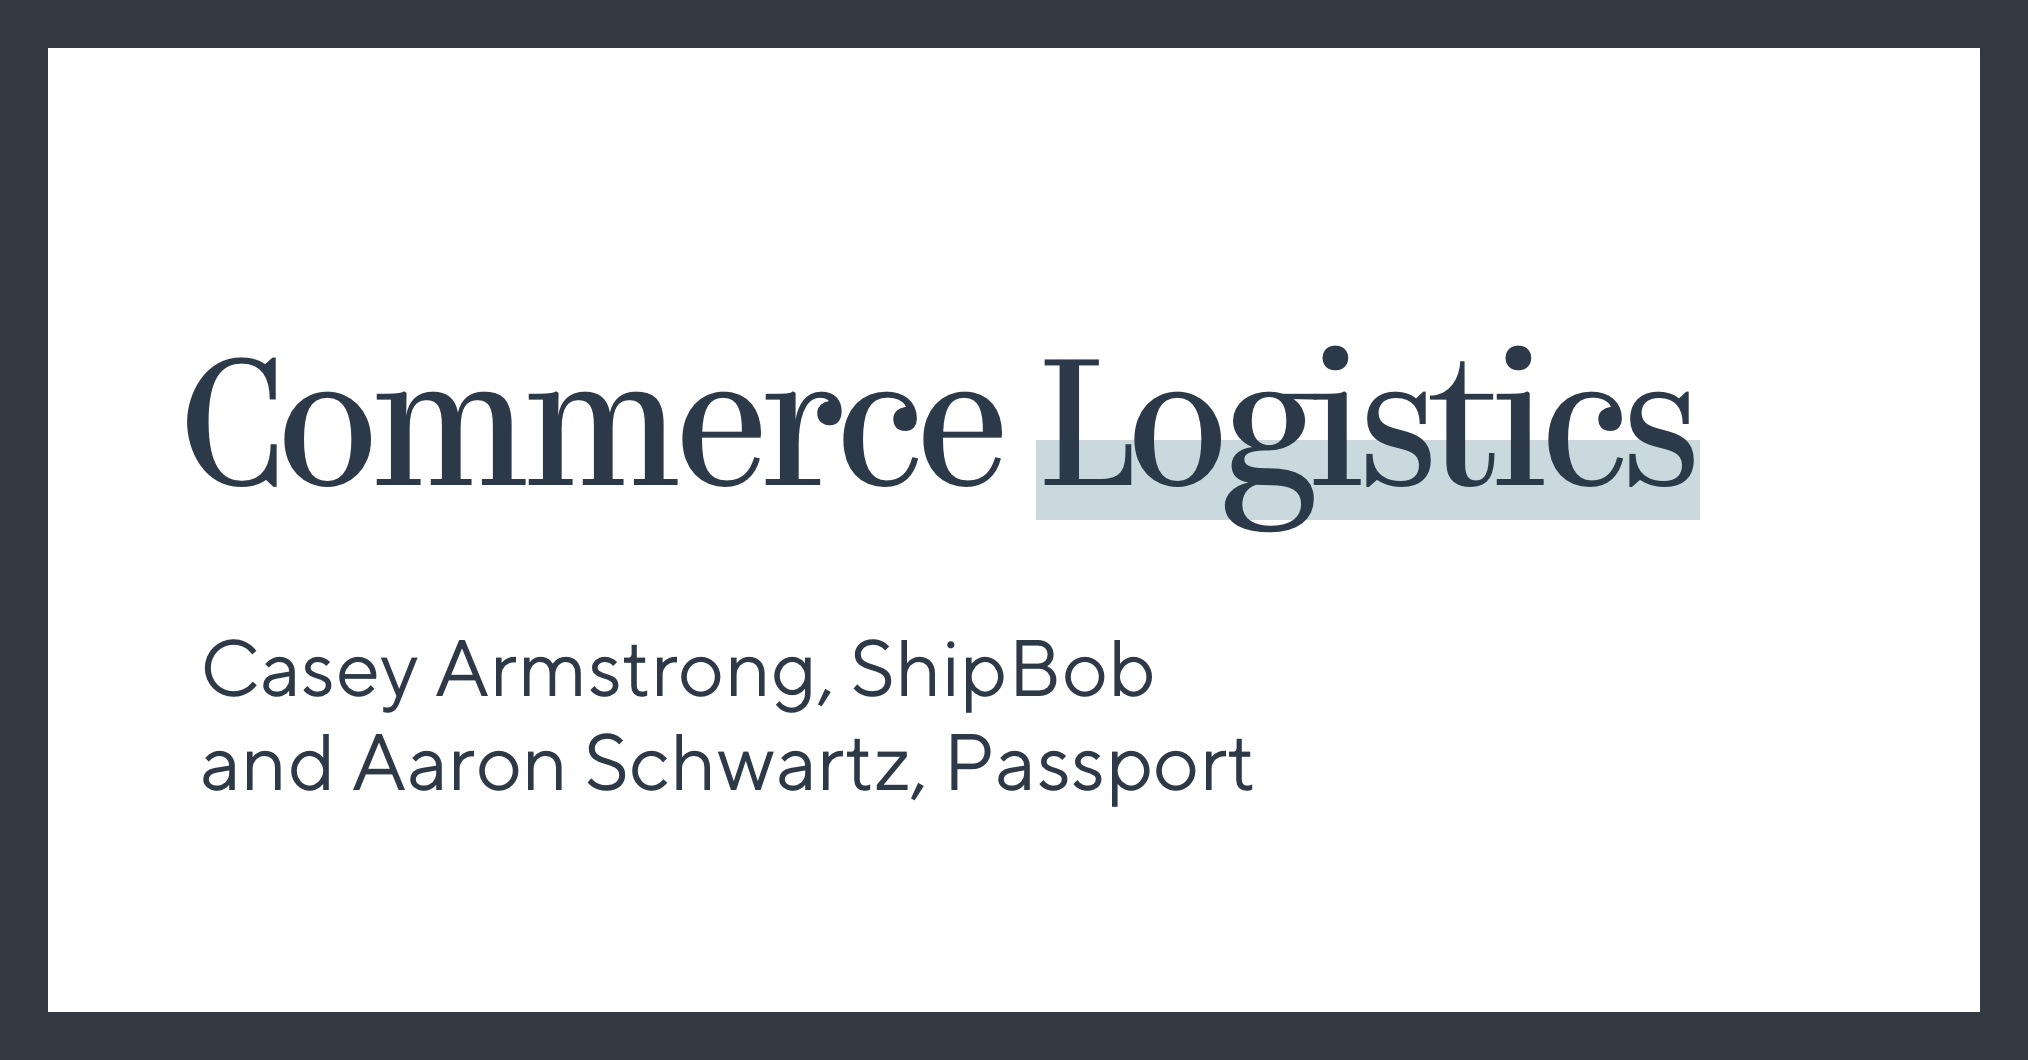 Commerce Logistics